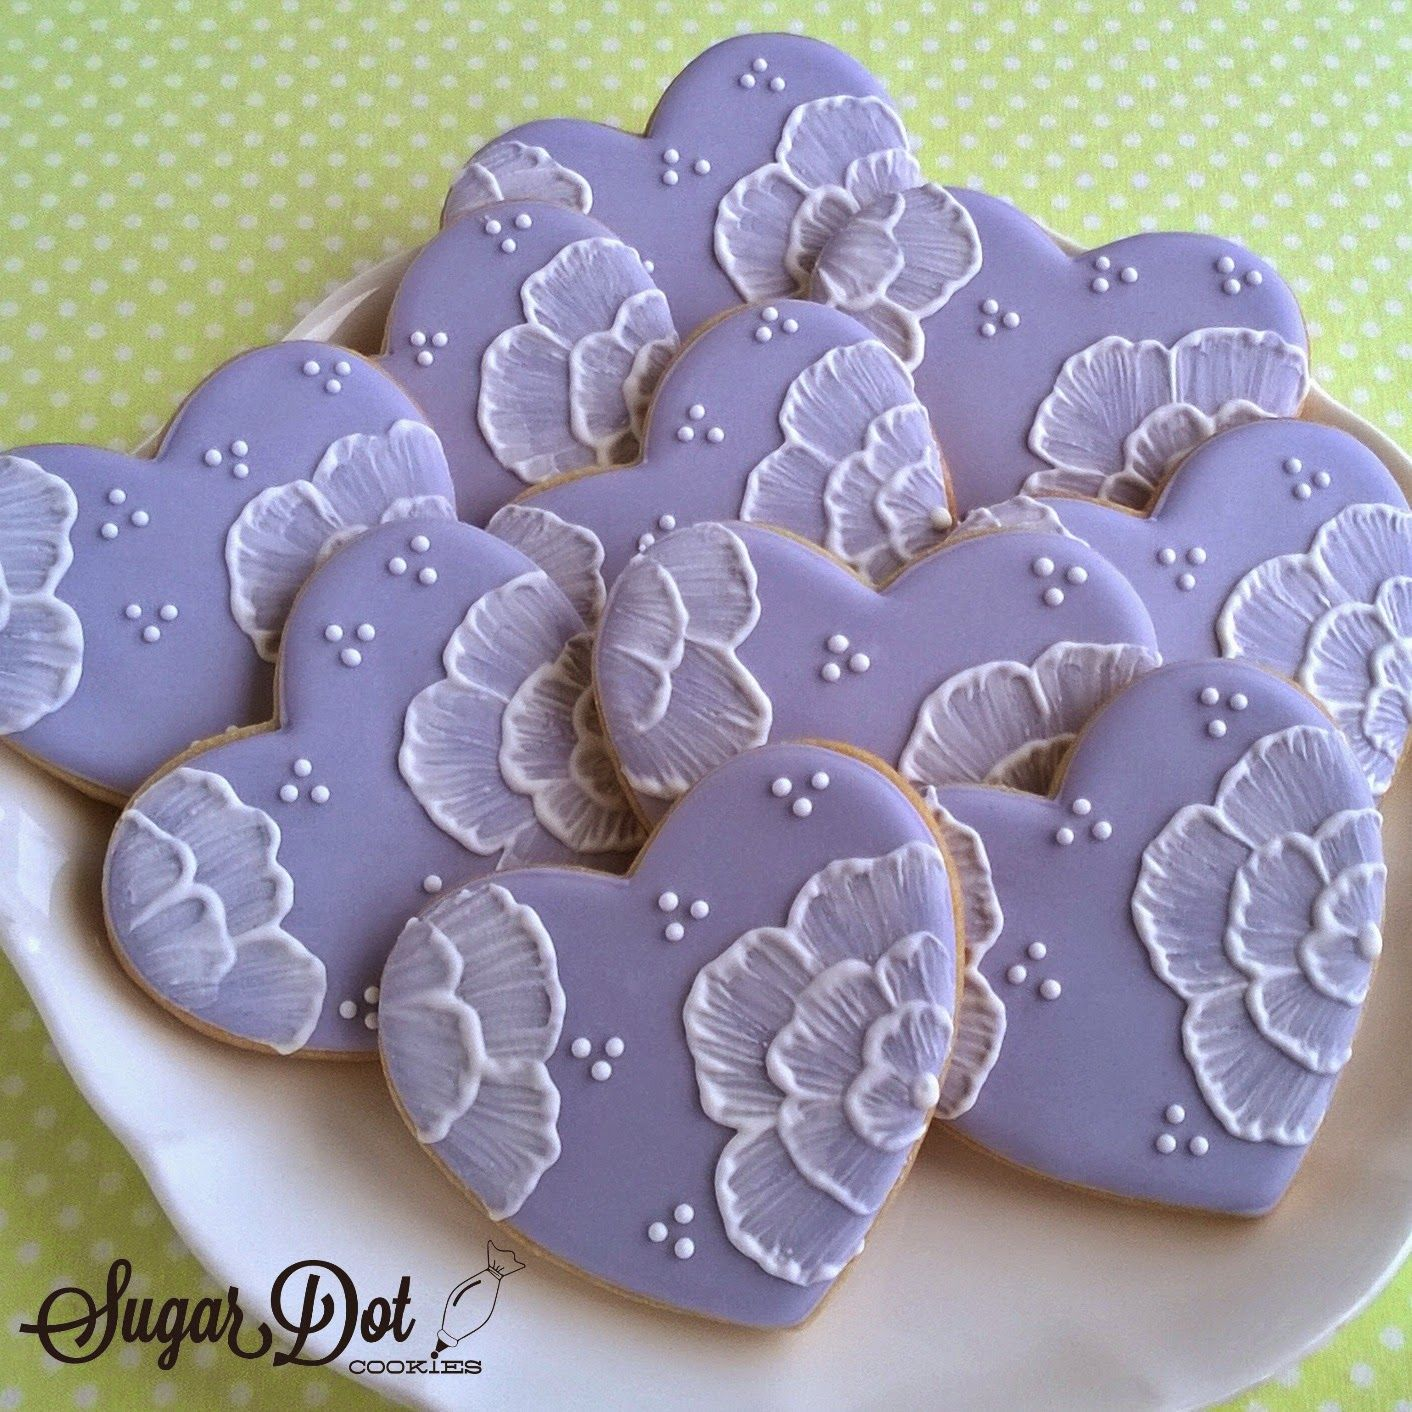 Brush Embroidered Heart Cookies (Sugar Dot Cookies